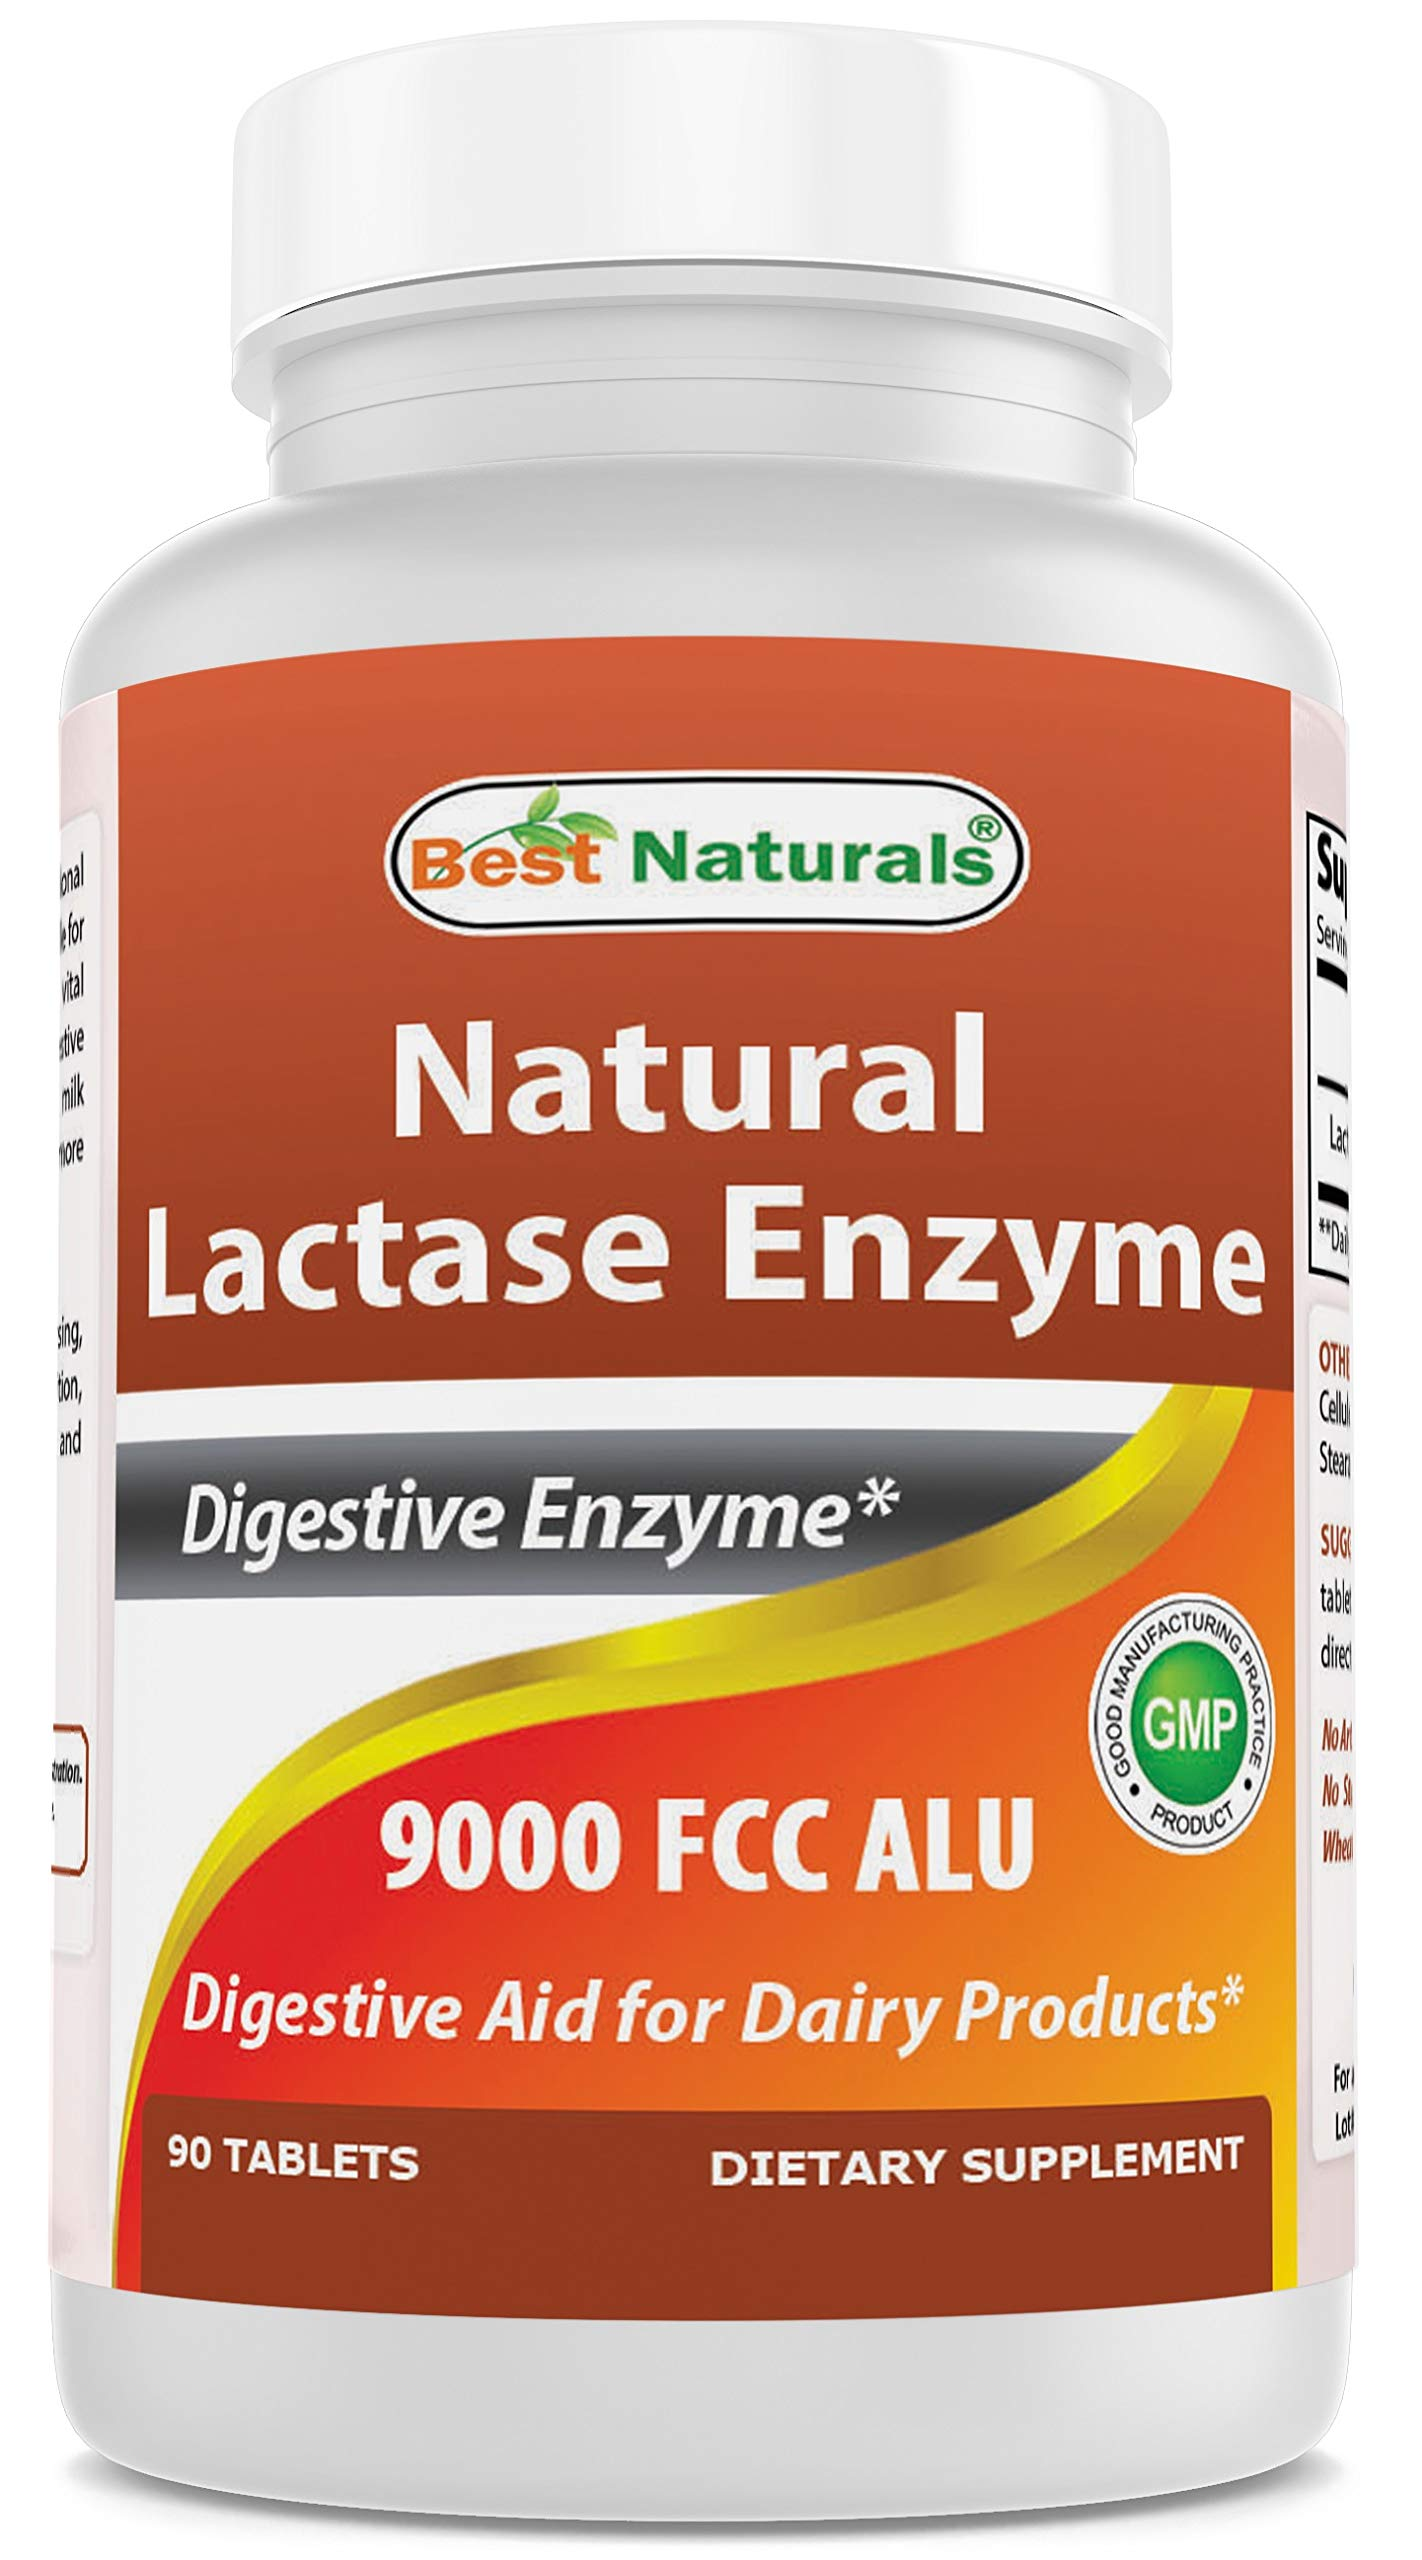 Best Naturals Lactose Intolerance Relief Tablets with Natural Lactase Enzyme, Fast Acting High Potency Lactase, 9000 FCC ALU, 90 Count by Best Naturals